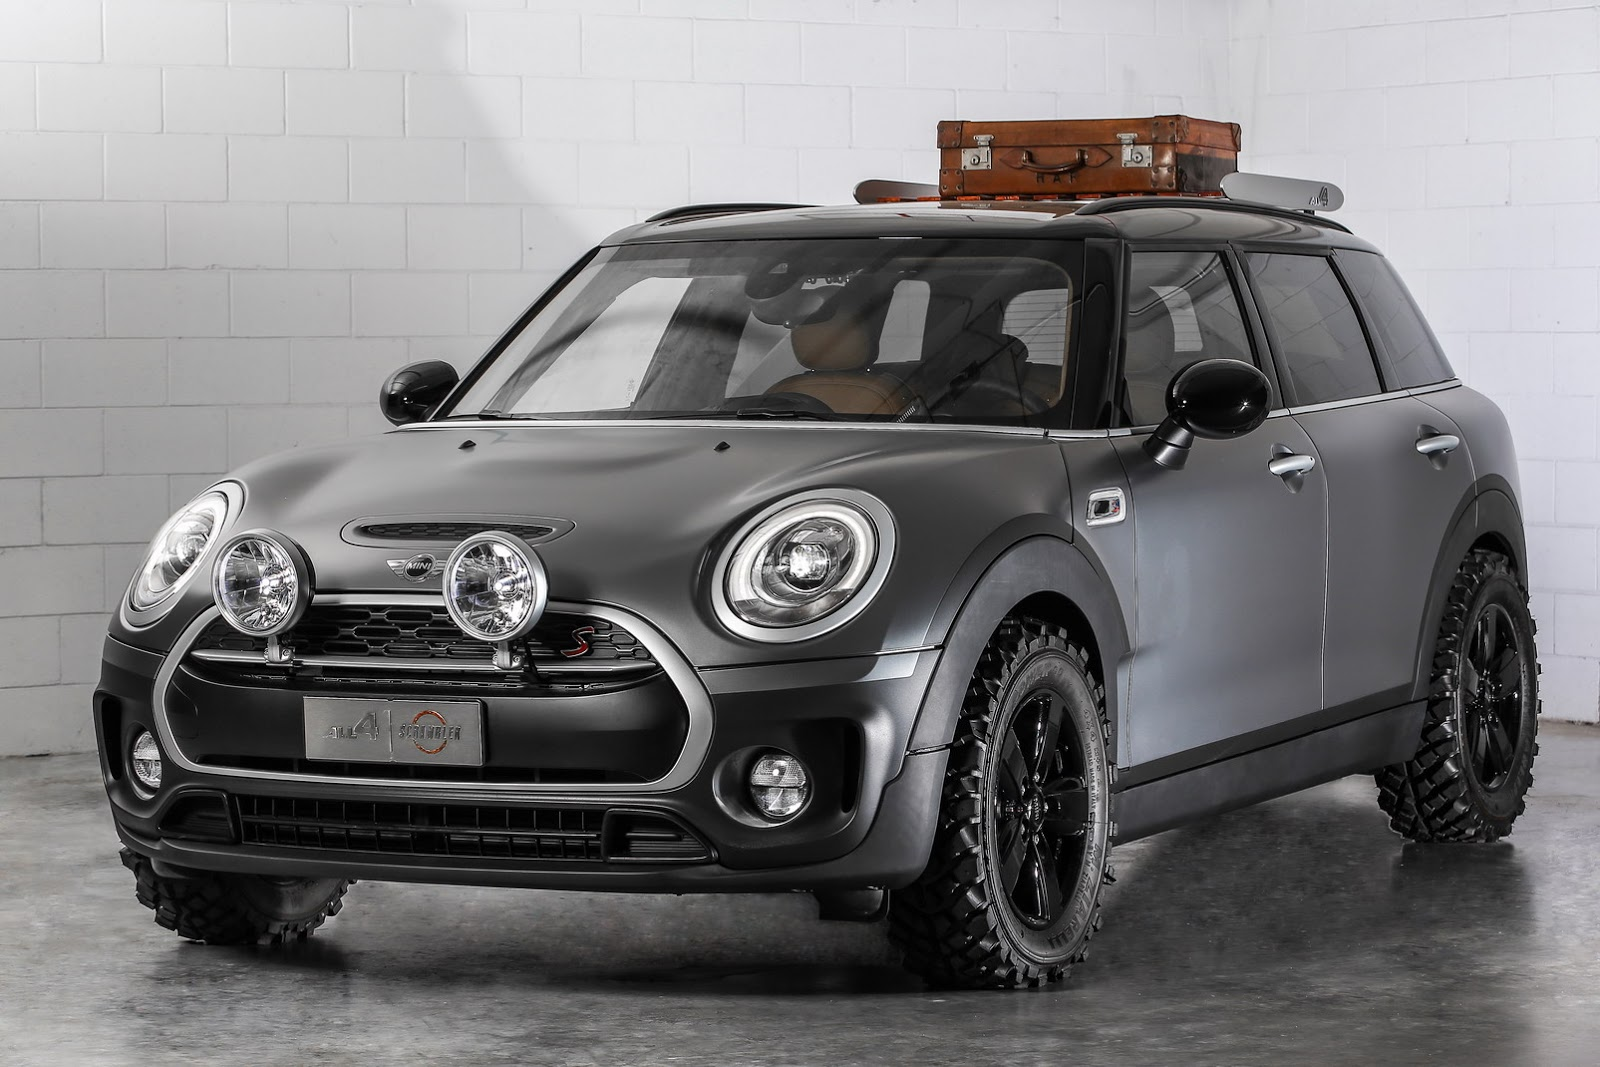 kitchen sd racks with New Mini Clubman Concept Is Scrambler on MA930IBT as well PR2500 moreover New Mini Clubman Concept Is Scrambler moreover PHST80IP in addition Counter Top Straw Dispenser Stainless Steel Straw Holder Organizer 63 X 4.